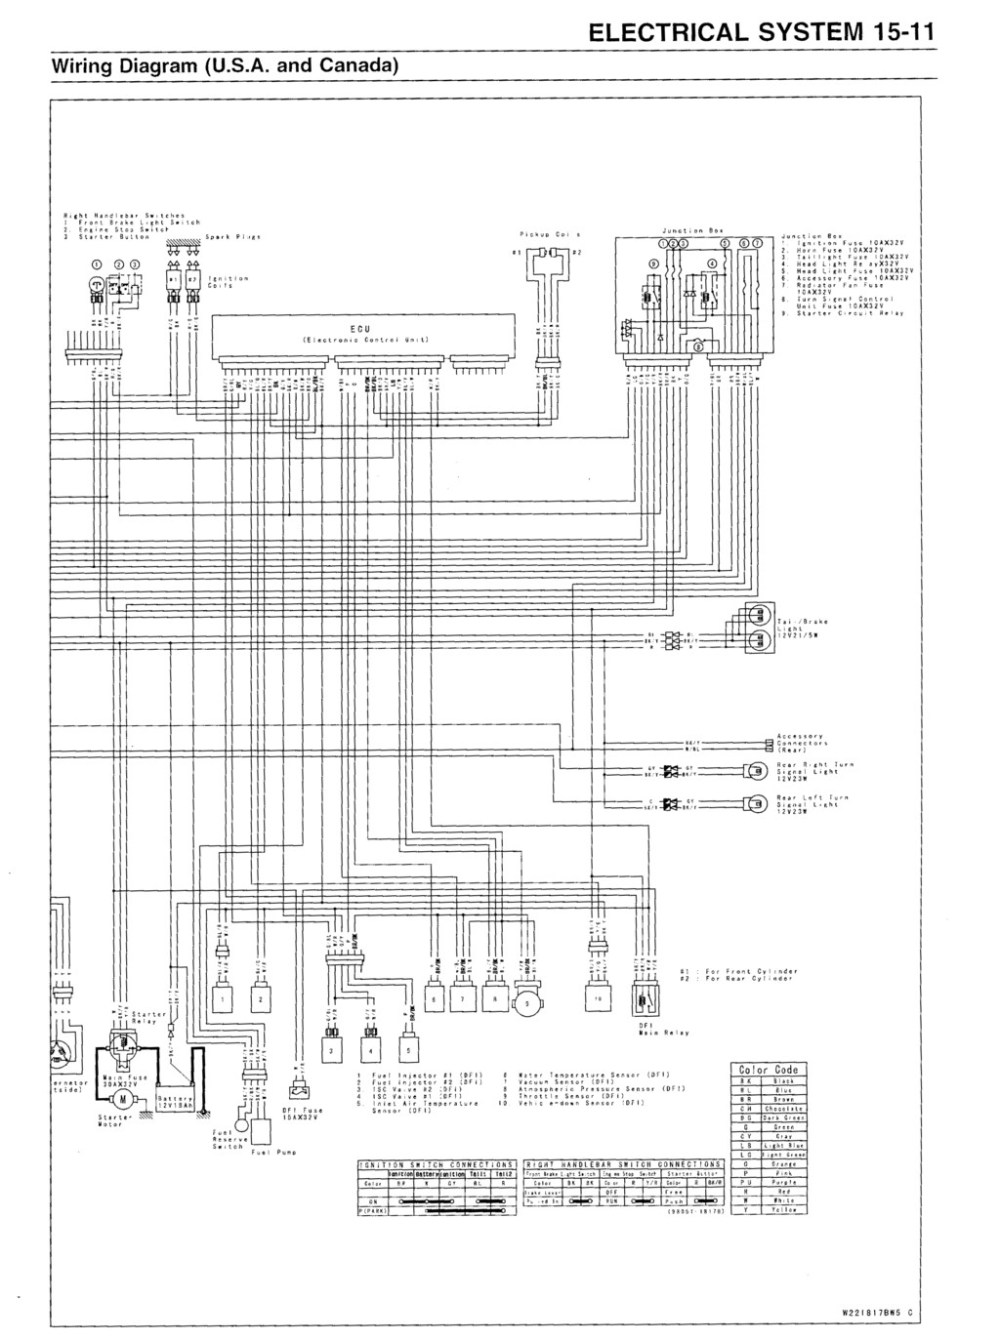 medium resolution of 1997 vulcan 800 wiring diagram 1999 kawasaki vulcan 1500 classic 1997 vulcan wiring diagram